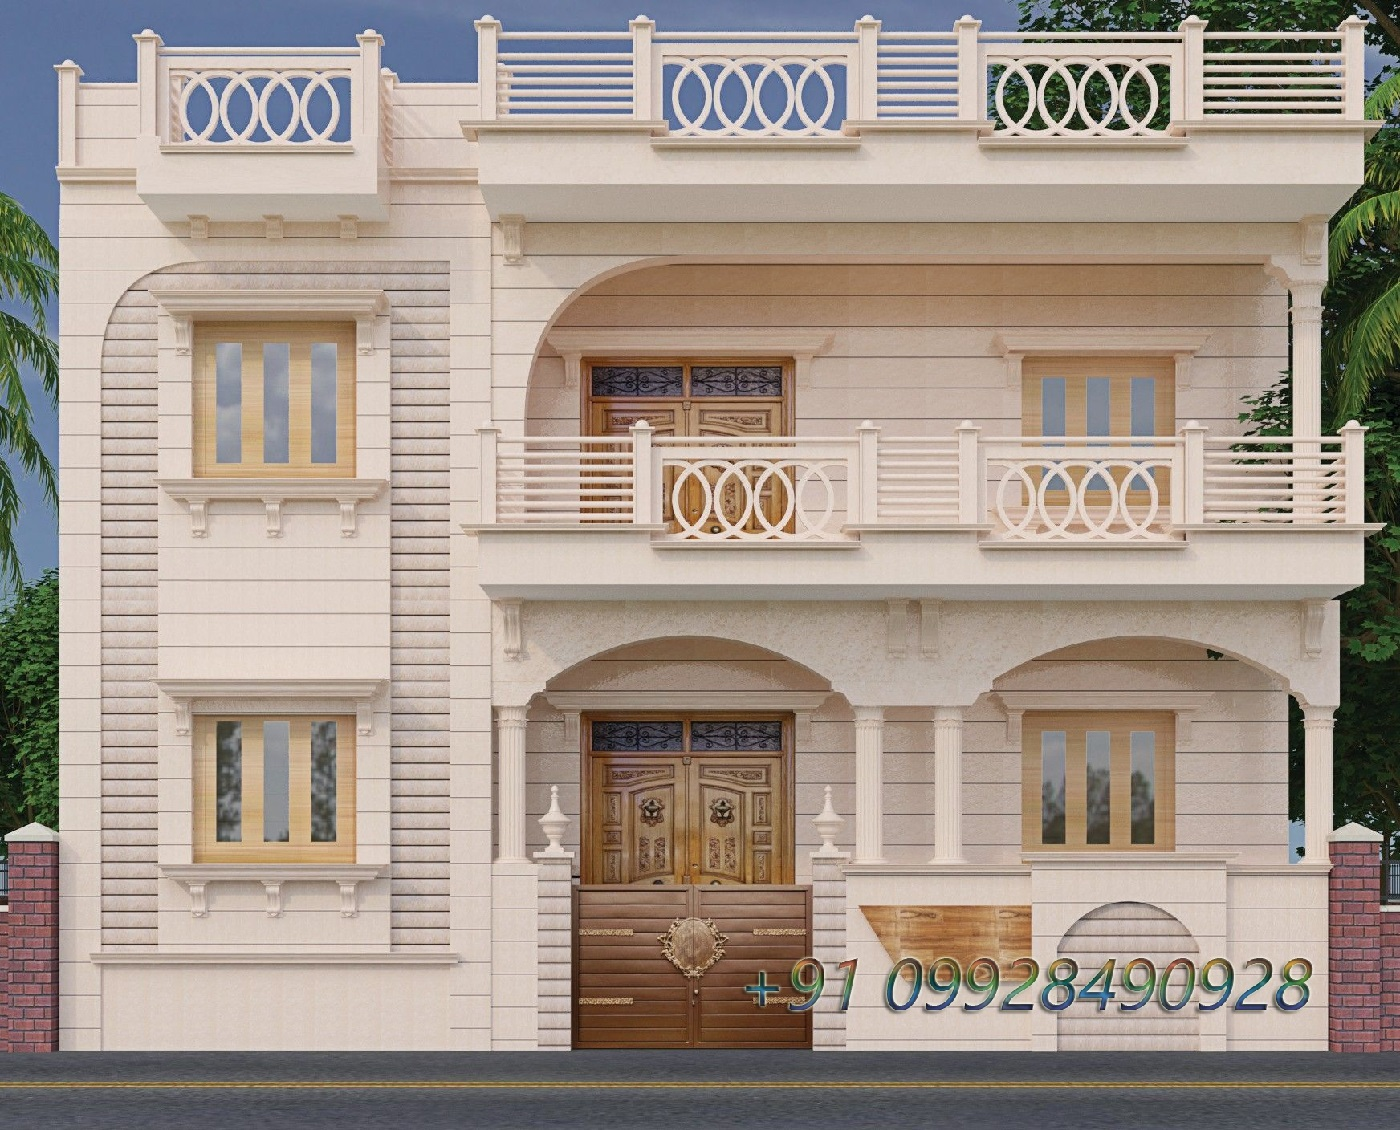 Stone Front Elevation Front Elevation Designs Jodhpur Sandstone Jodhpur Stone Art Jodhpur Stone All Buiding Design Photo Jodhpur Stone Design Home Elevation Stone Art House Front Elevation